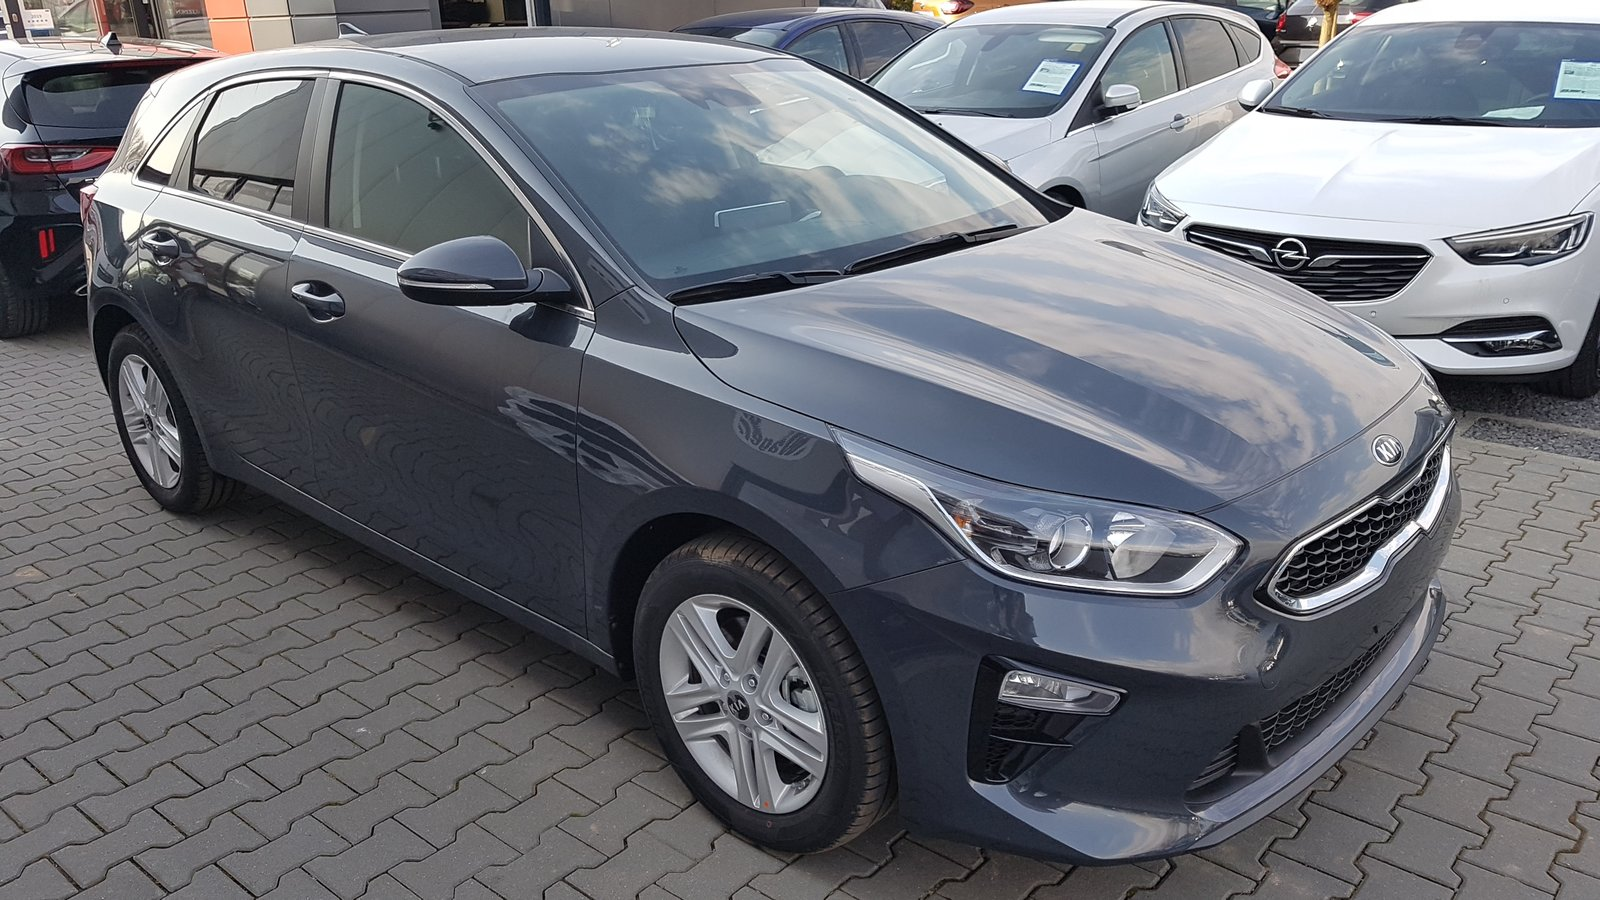 KIA CEED Cee'd 160PS AT Kamera*Sitzheizung*App-Connect! Autosoft BV, Enschede